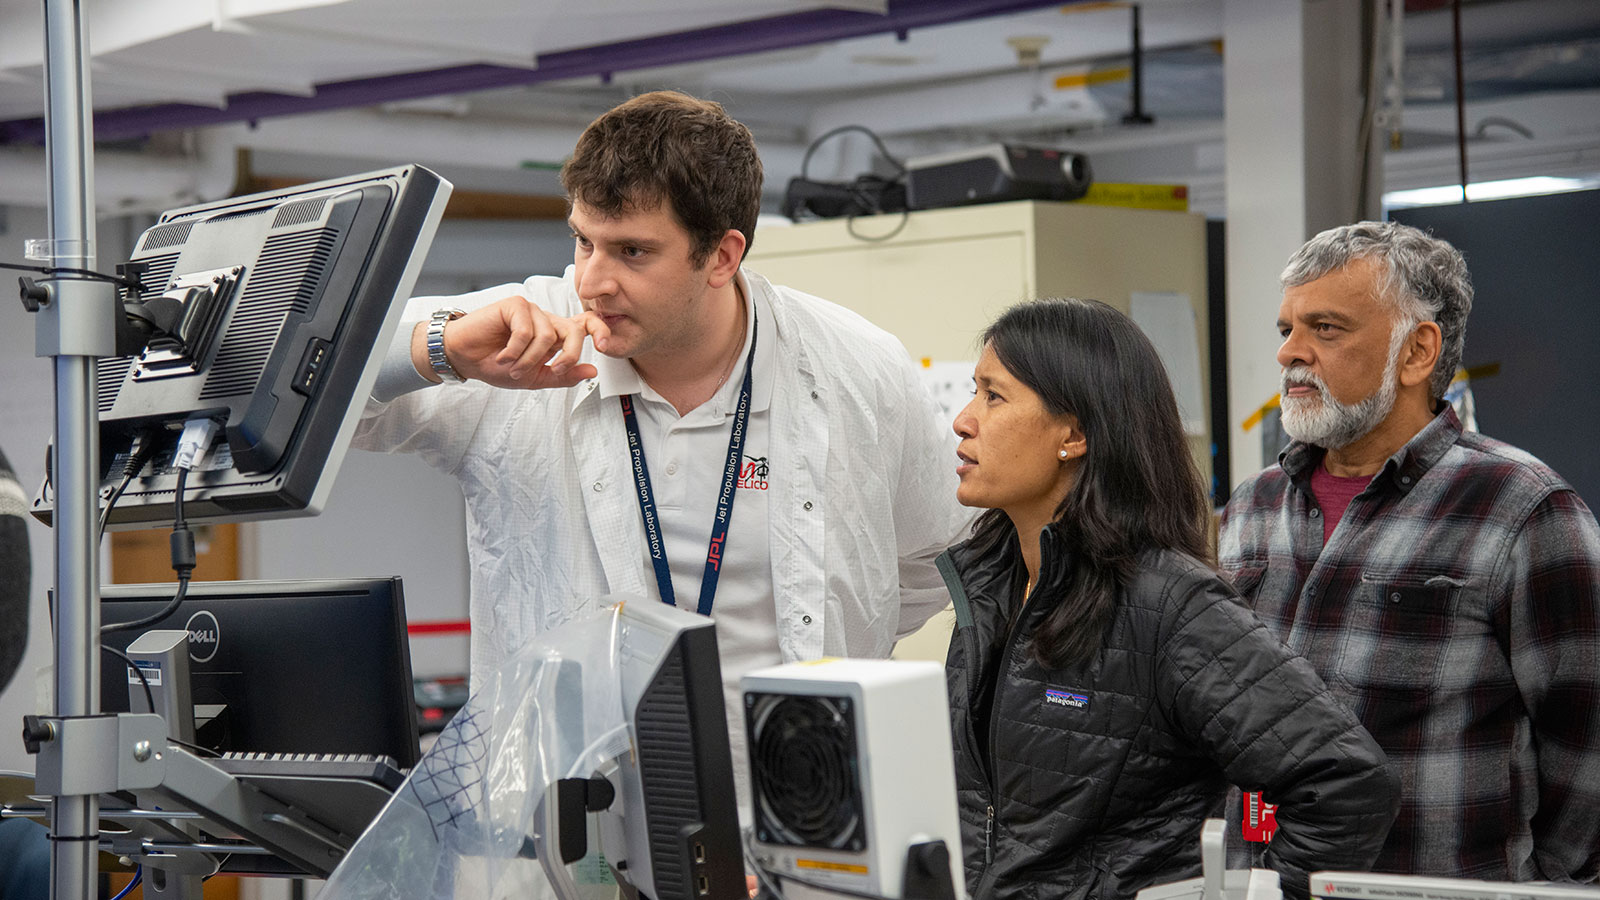 Teddy Tzanetos, MiMi Aung and Bob Balaram of NASA's Mars Helicopter project observe a flight test.